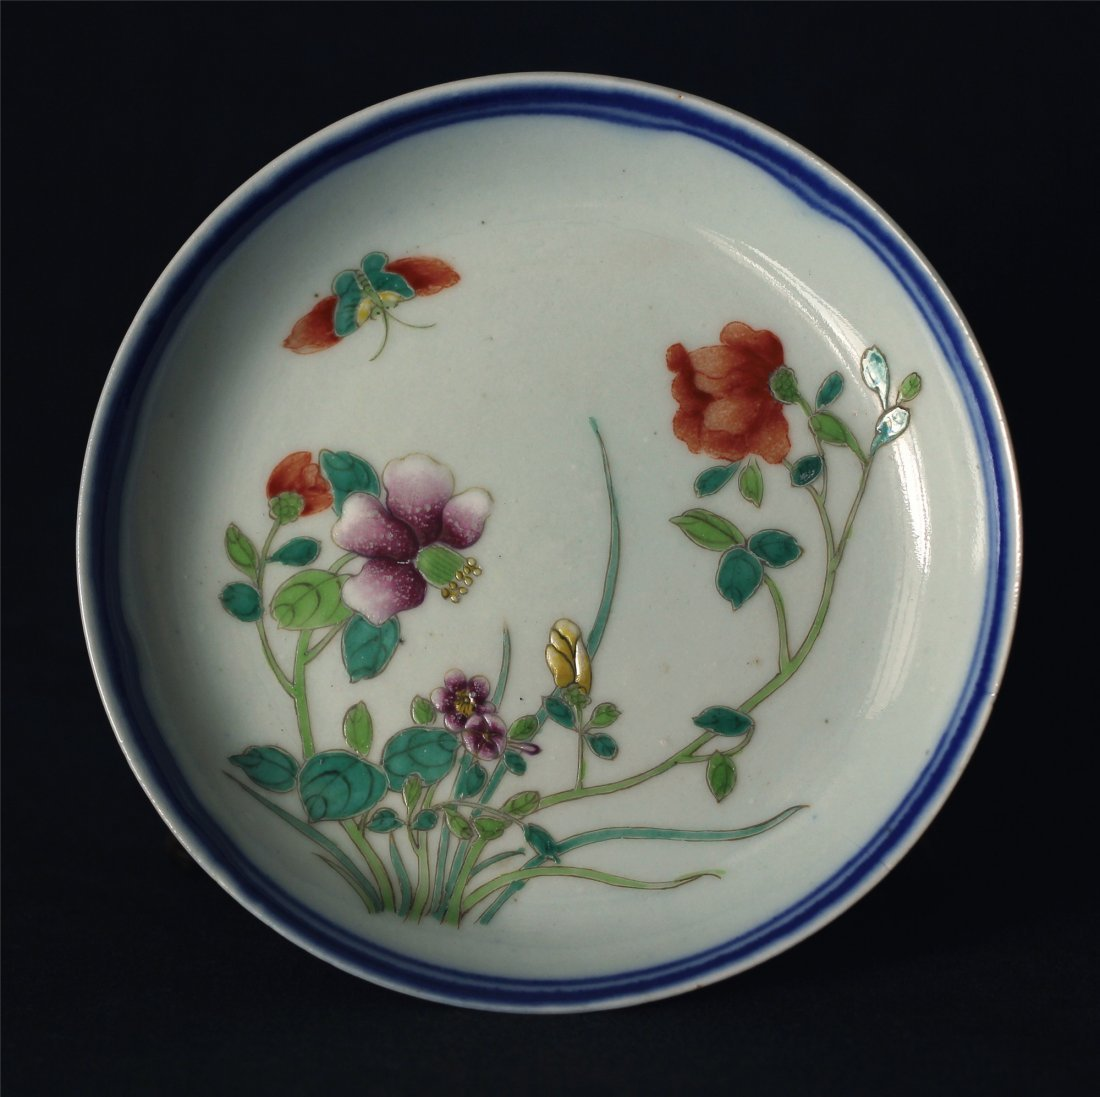 Blue and white & Famille rose porcelain plate of Qing